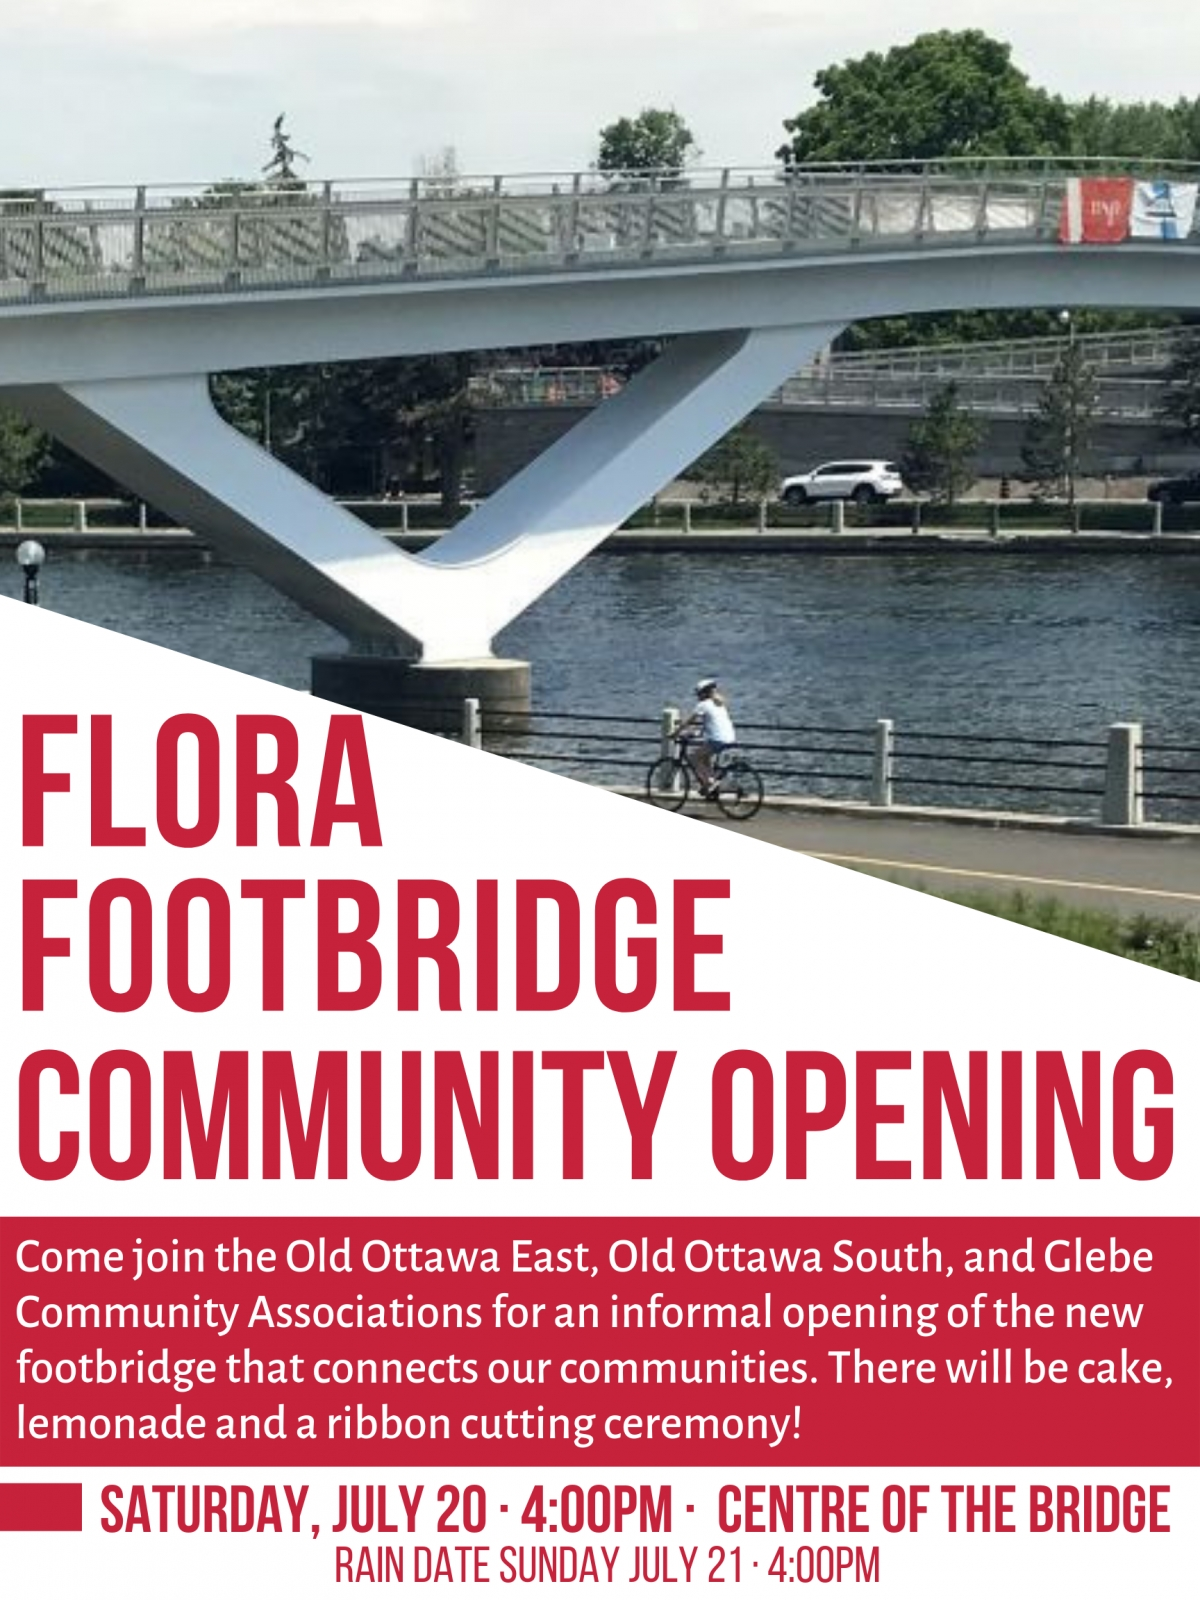 Community Opening of the Flora Footbridge